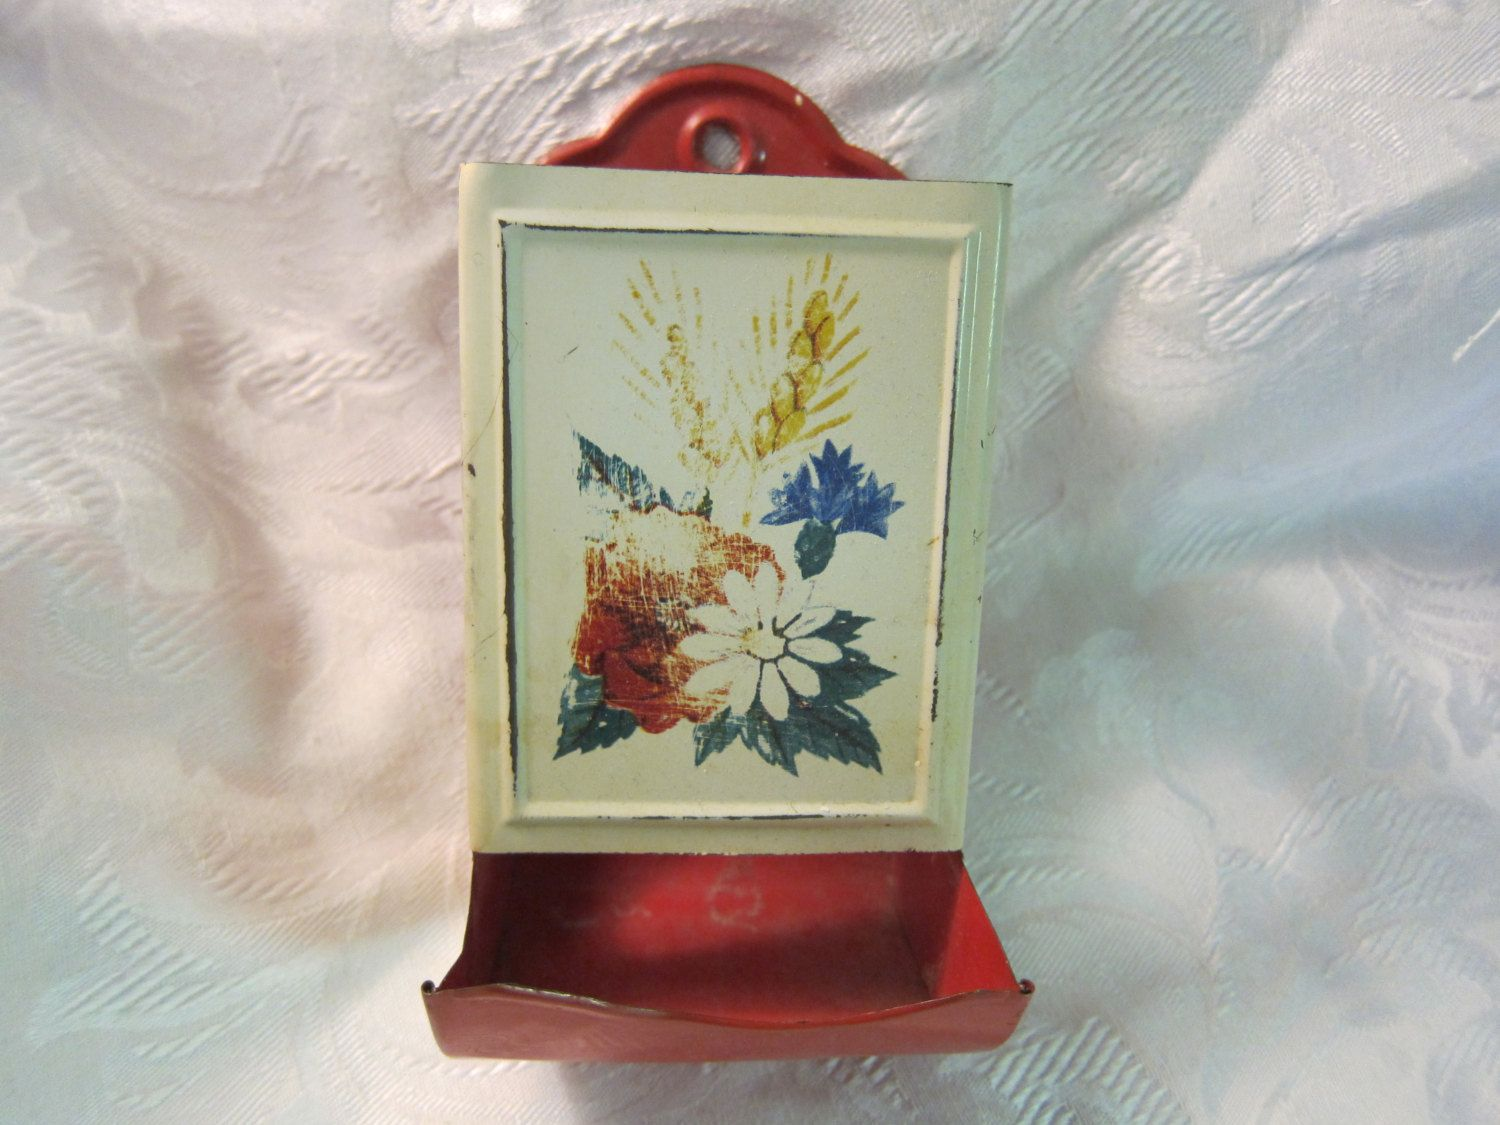 Vintage Tin Kitchen Match Holder, circa 1940s, Red and Cream with Painted Floral, Perfect Condition for UpCycling by www.CherryBlossomSurplus.Etsy.com on Etsy